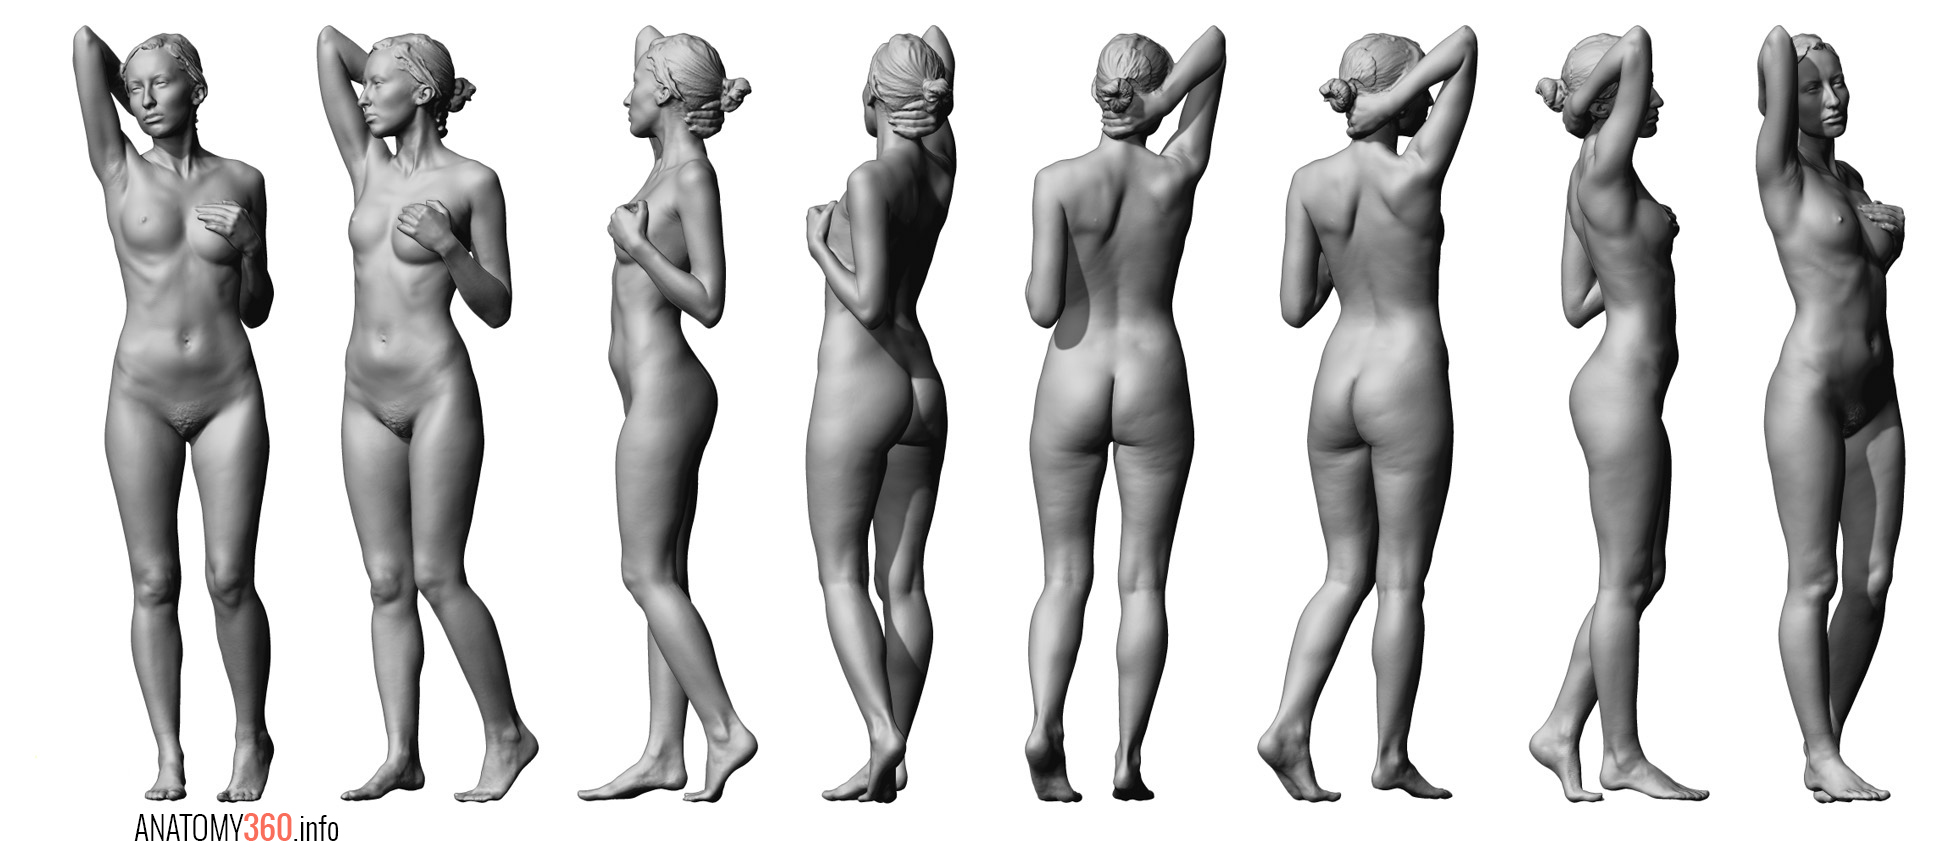 Nude body scanner images